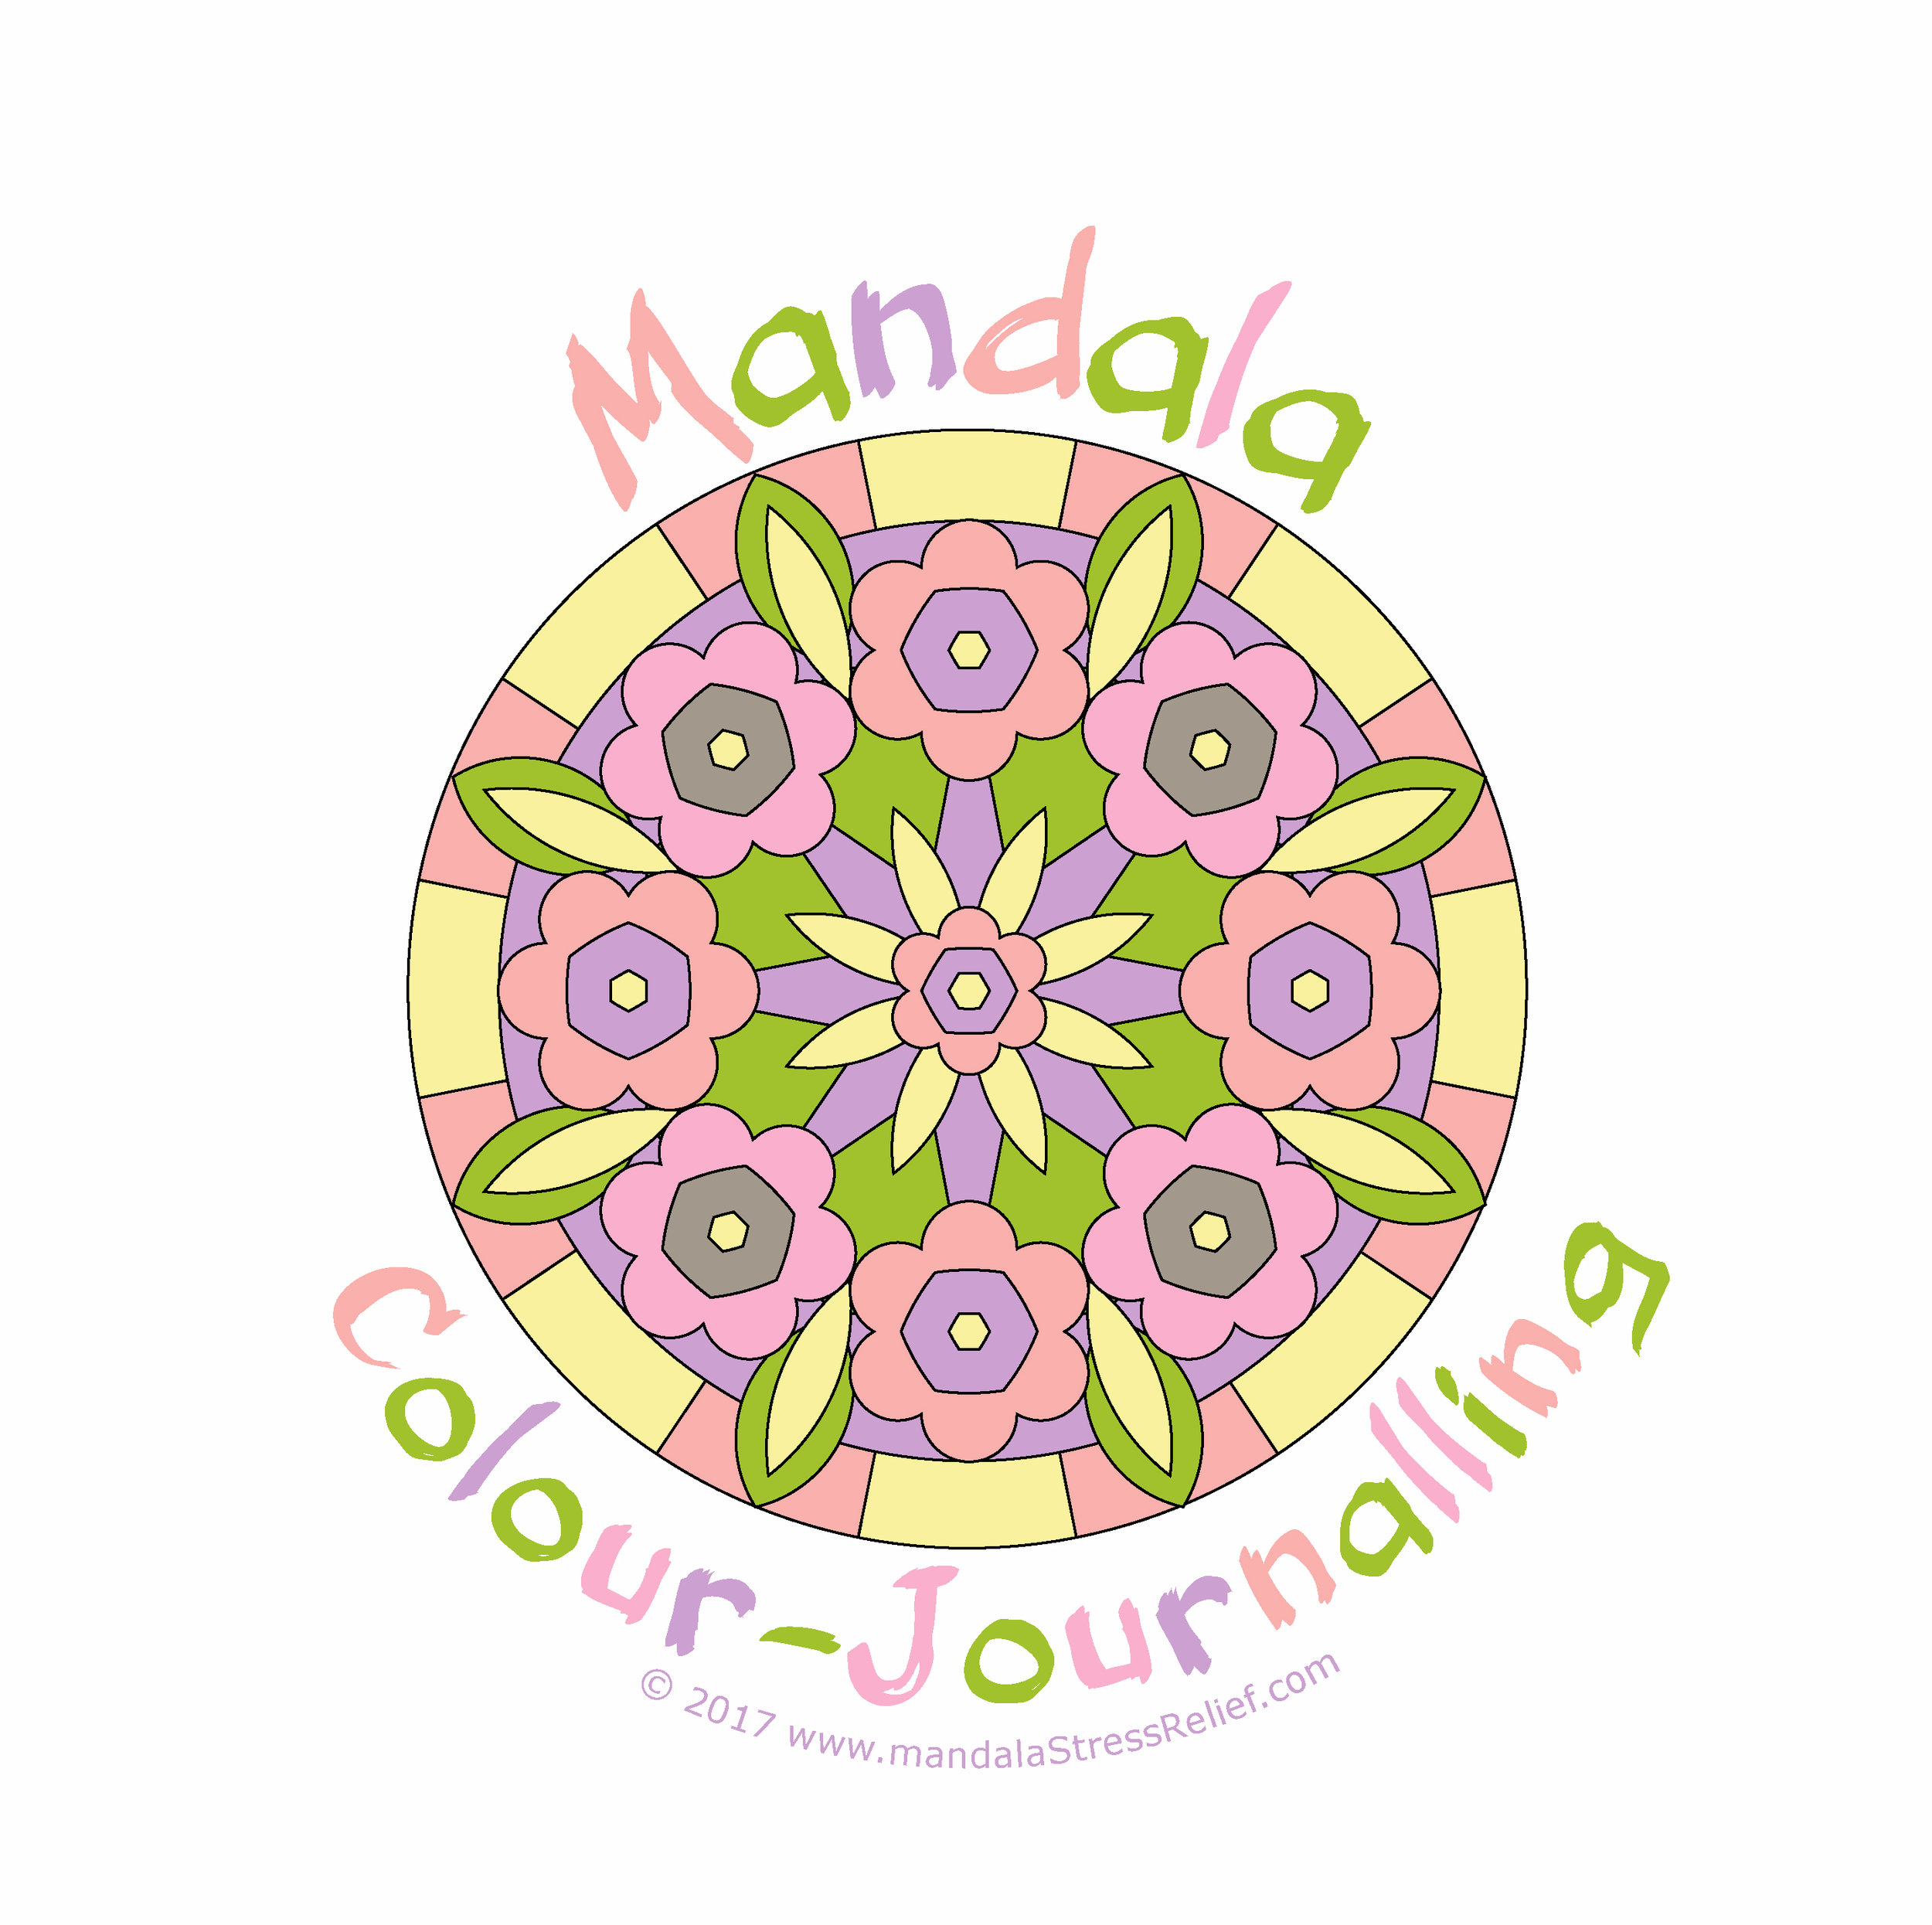 Discover the Power of your Own, Everyday Wisdom (mandala-93F2_12)